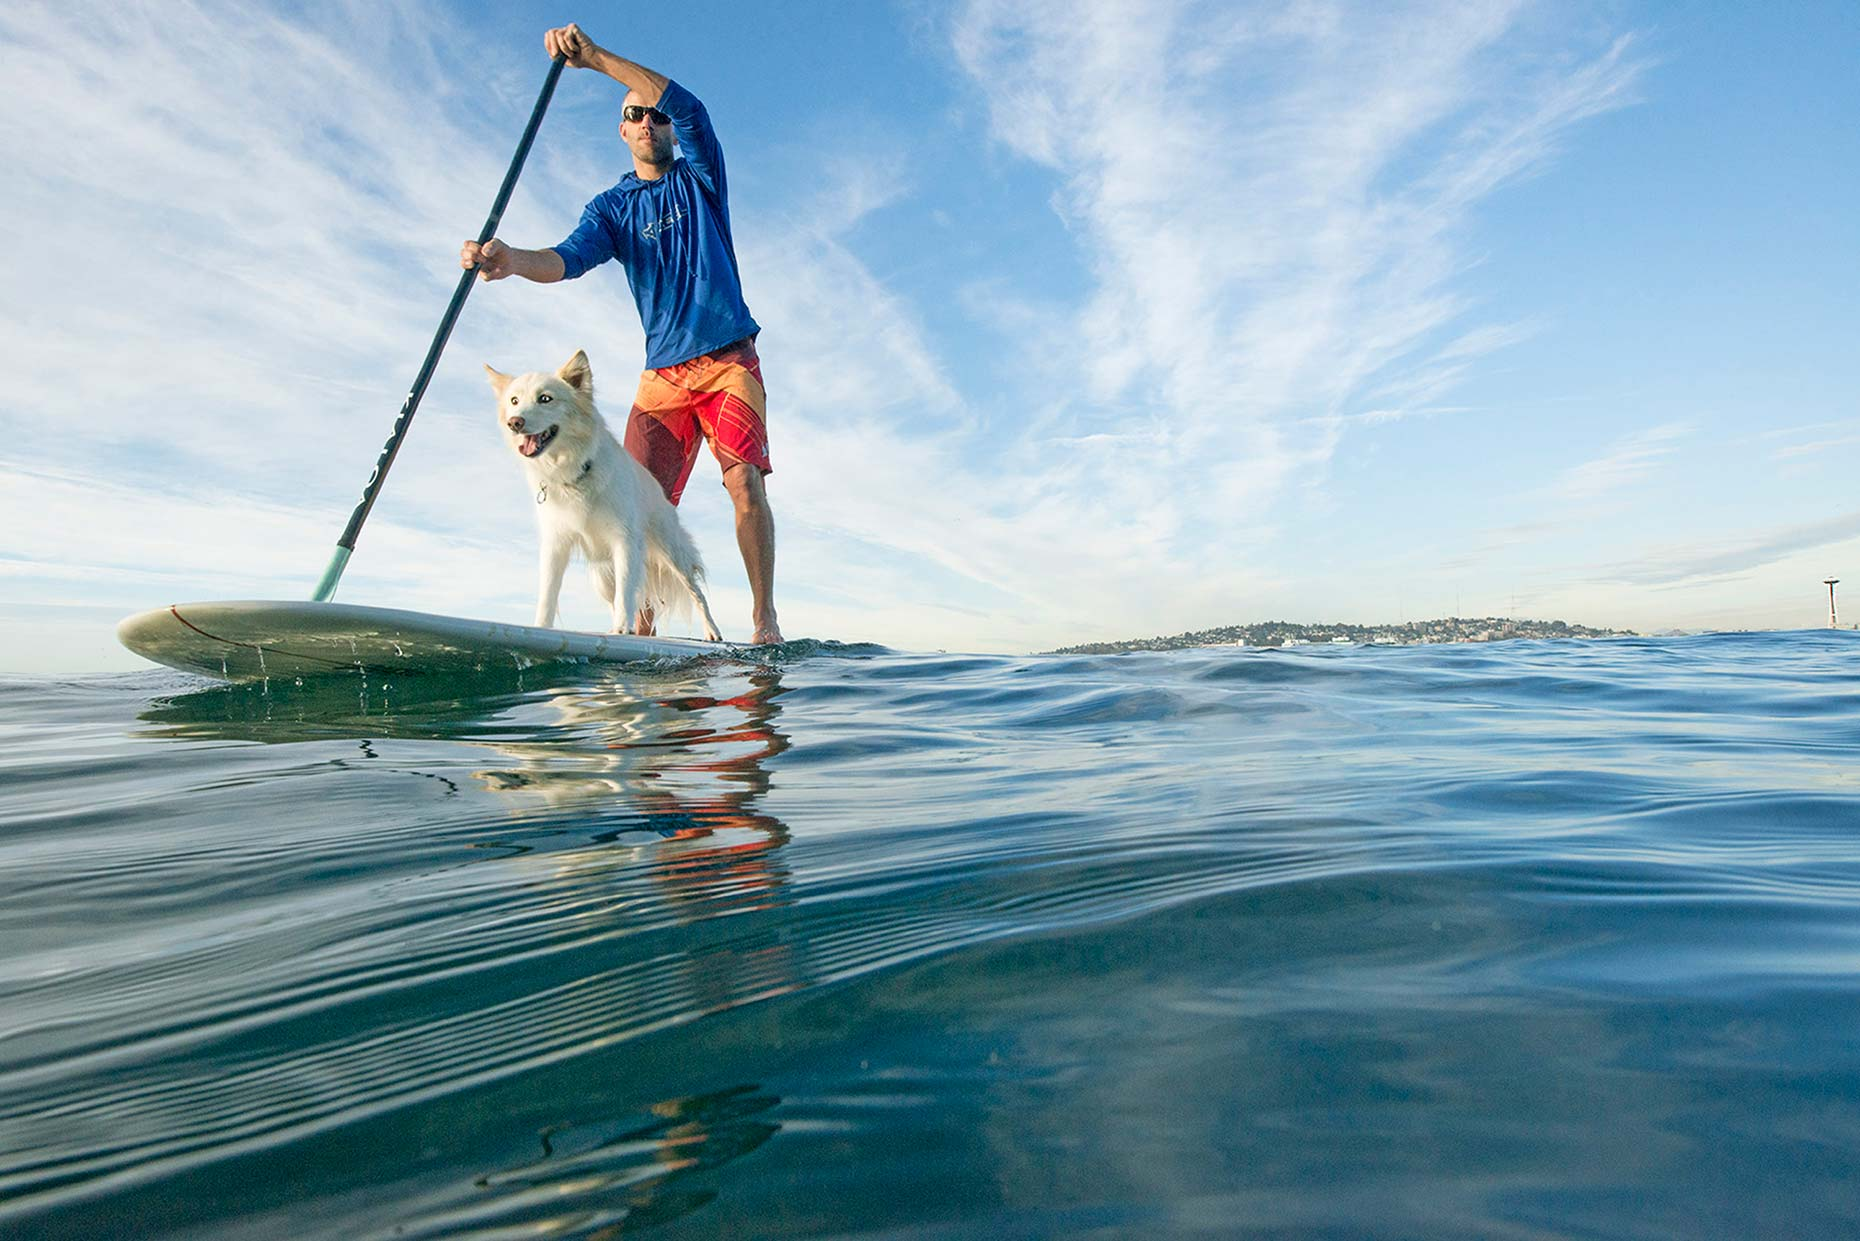 Ian-Coble-SUP-Paddling-Ocean-Beach-Dog-Nikon